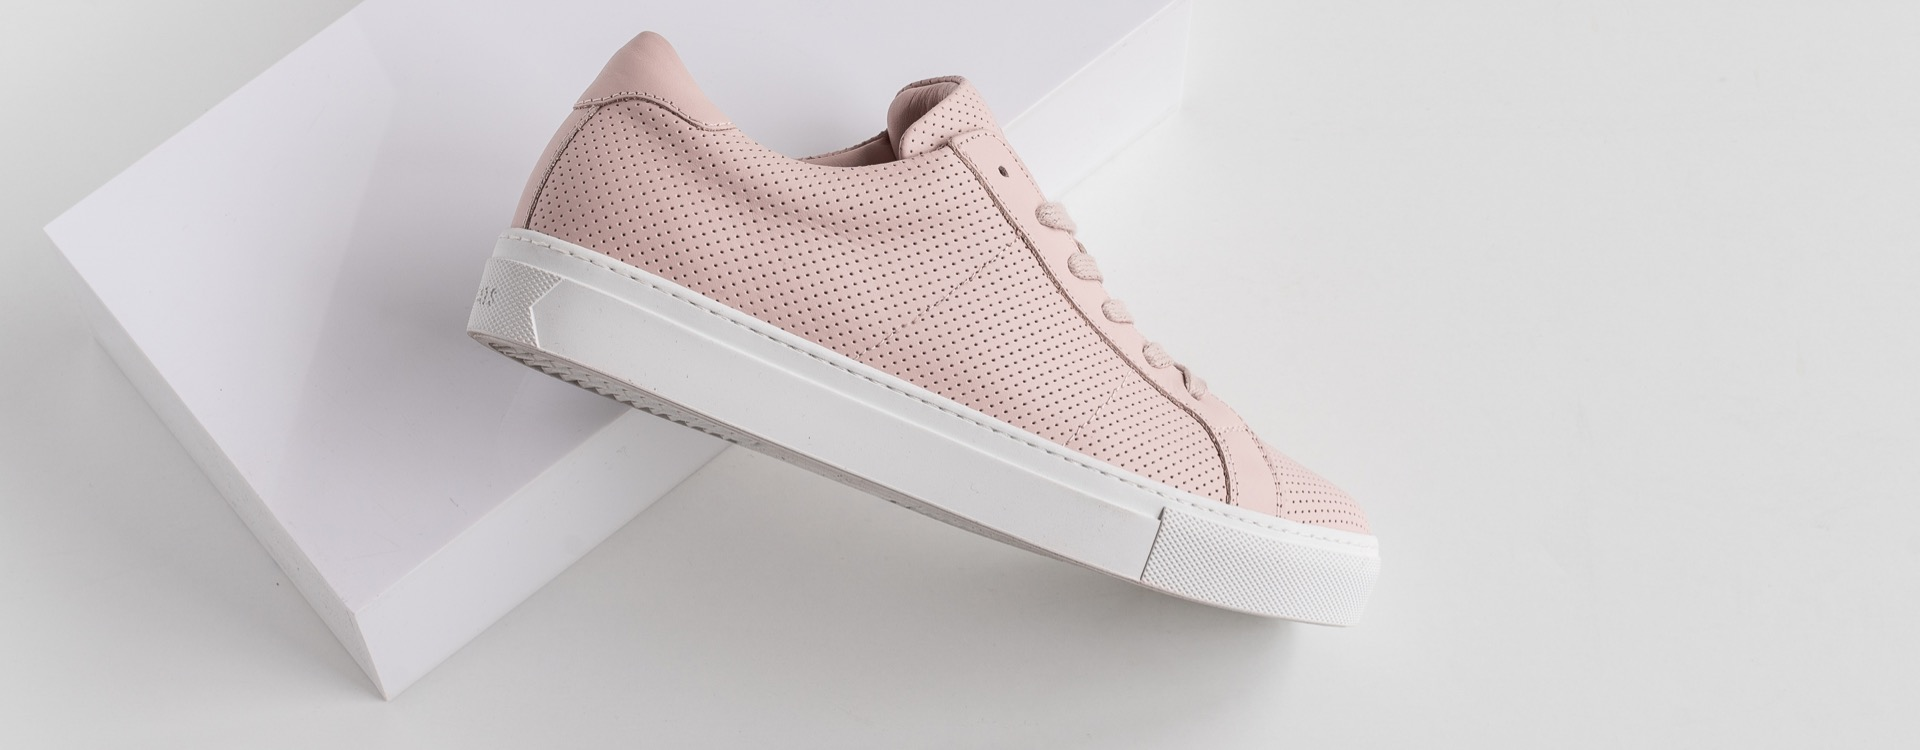 Women's Royale Perforated - Shop Now